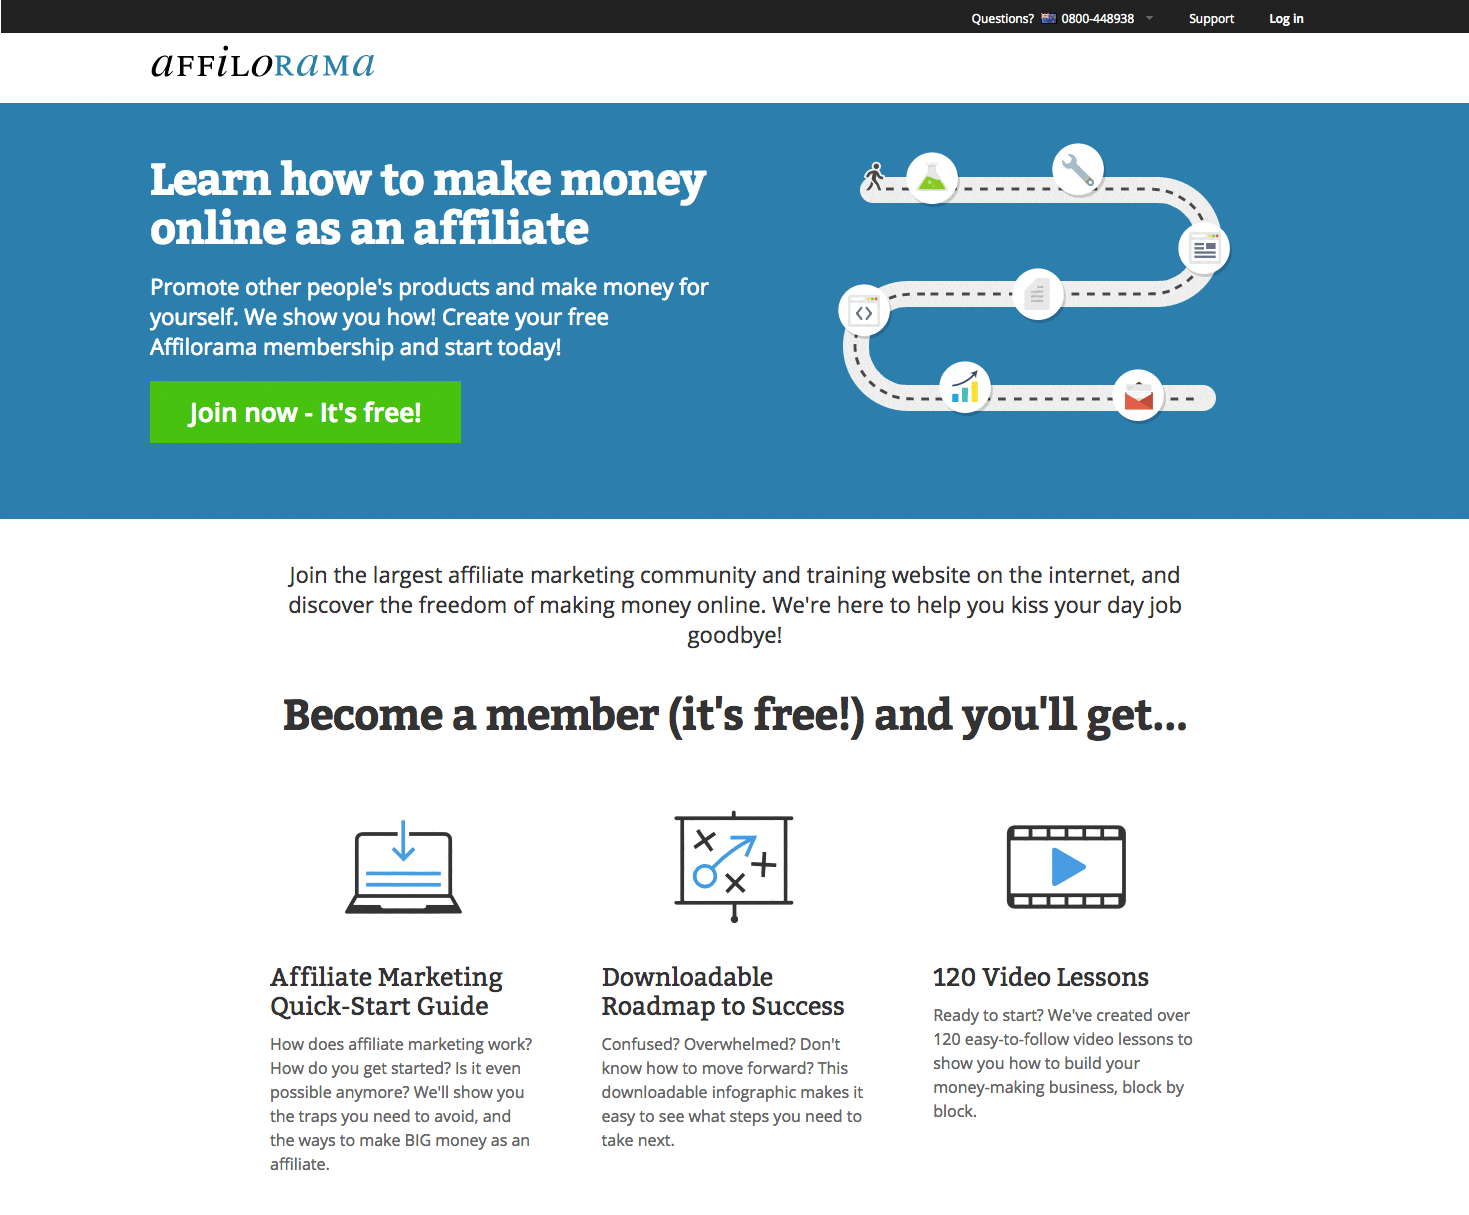 The Affilorama Homepage